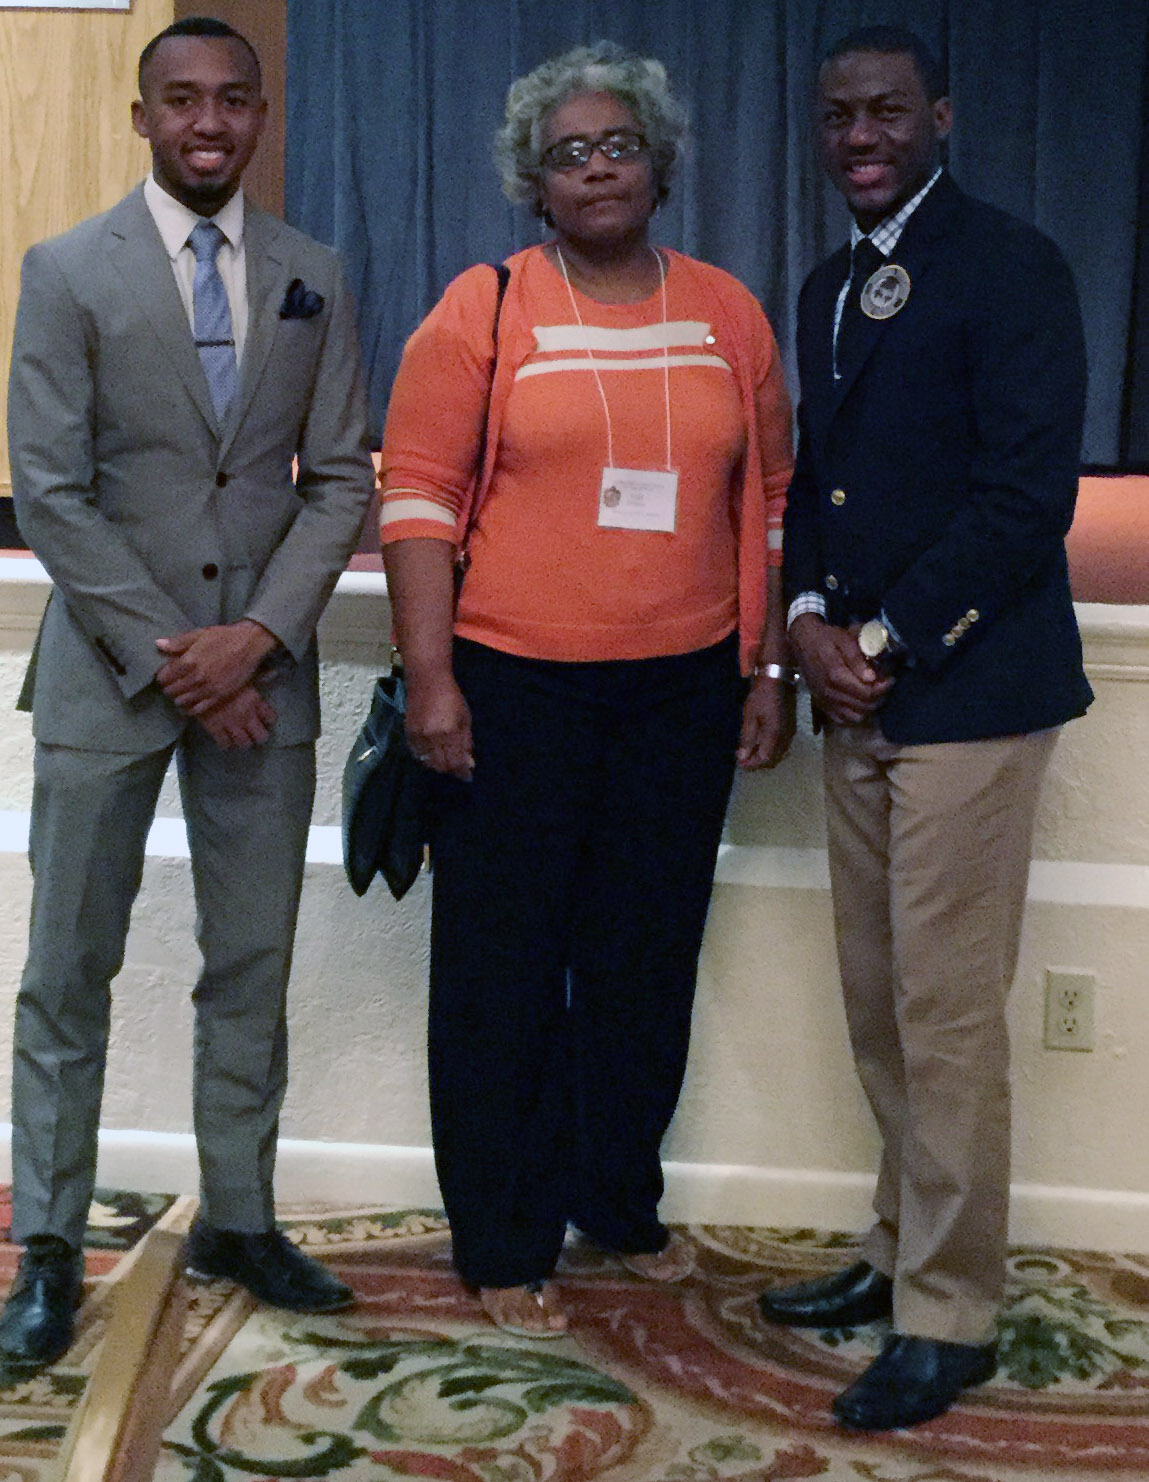 Southern University Dolores Margaret Richard Spikes Honors College student scholars Kristofer McKinney and Michael Agbor made presentations at the Southern Regional Honors Council conference in Orlando, Florida, March 31 through April 2, 2016. Pictured (left to right): McKinney, SUBR Honors College counselor Della Perkins, and Agbor.